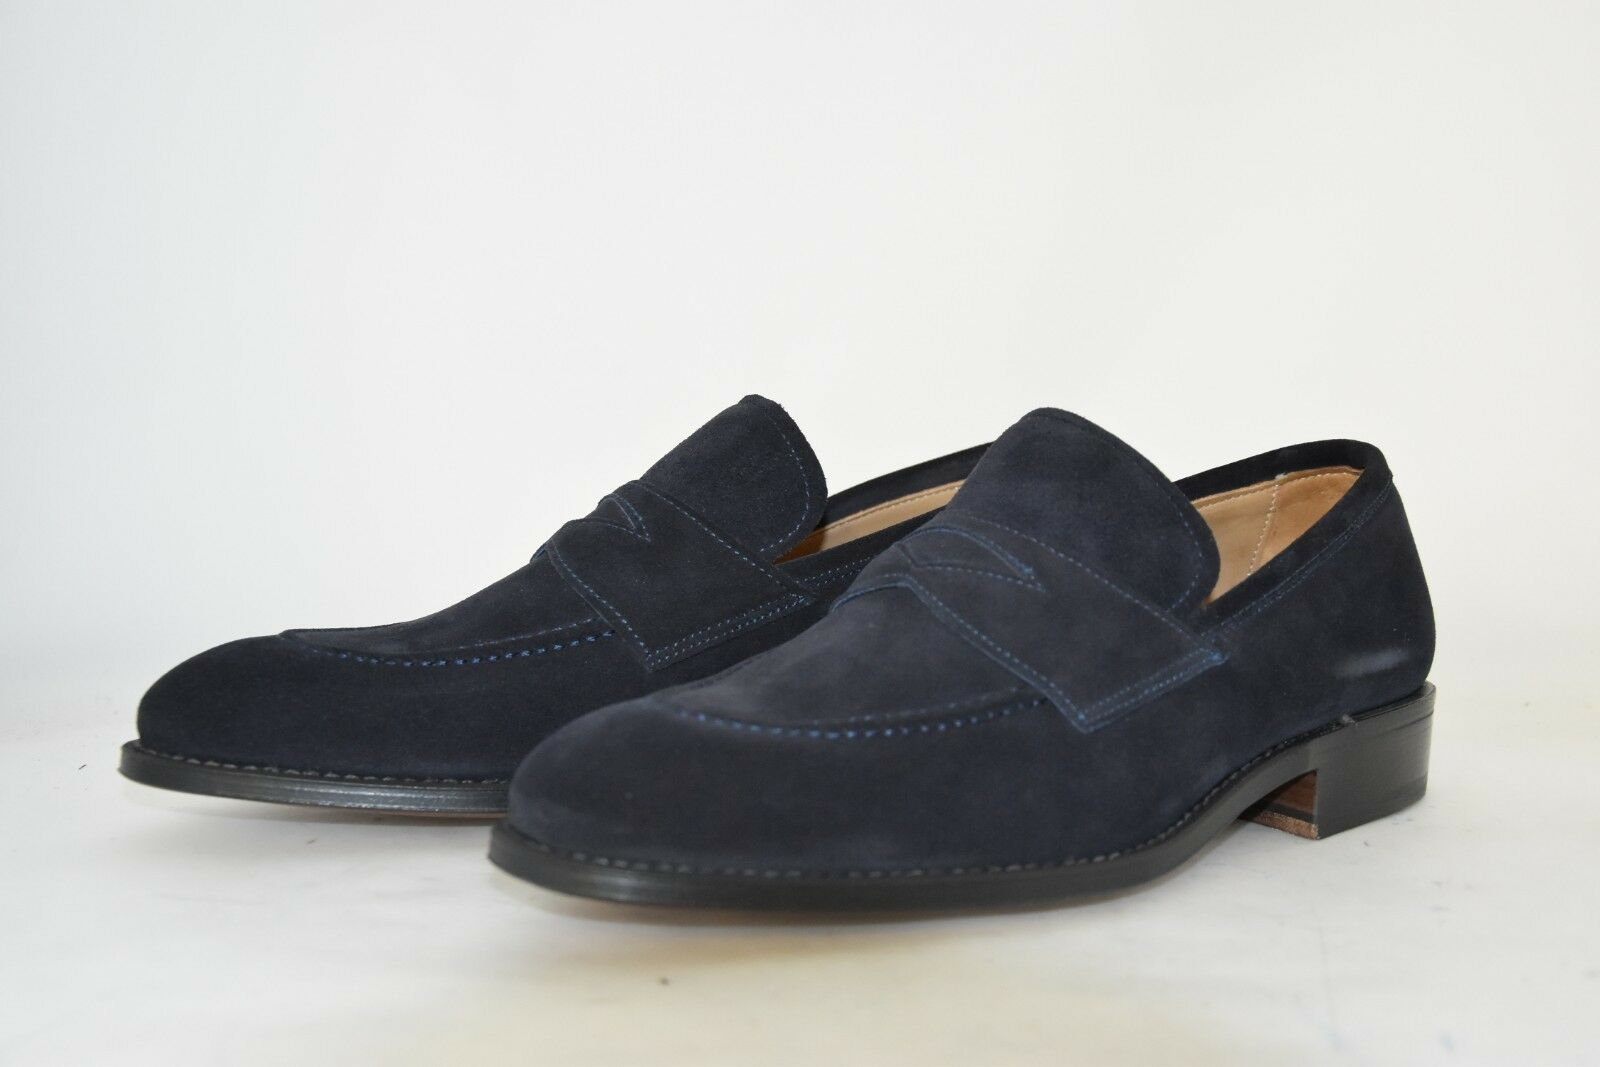 risparmia il 35% - 70% di sconto MAN-5½eu-6½us-PENNY LOAFER-MOCASSINO-blu LOAFER-MOCASSINO-blu LOAFER-MOCASSINO-blu SUEDE-CAMOSCIO NERO-LEATHER SOLE  l'intera rete più bassa